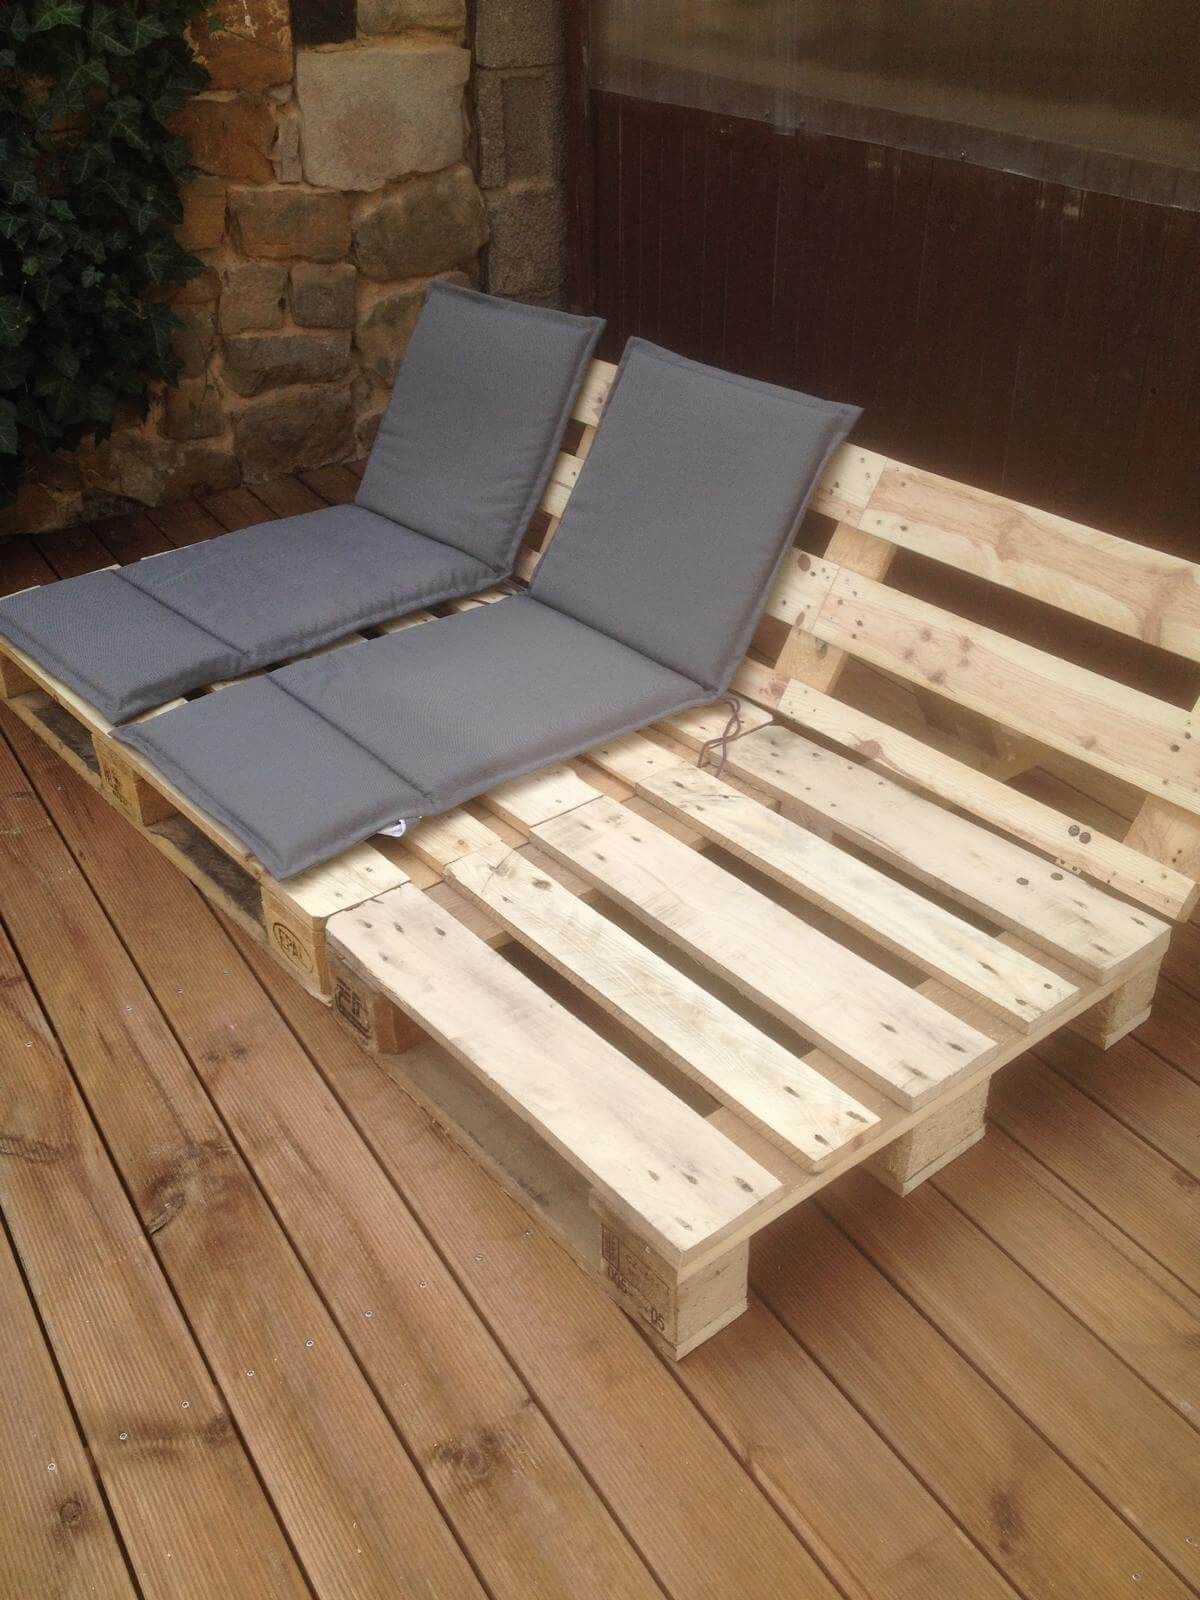 Reclining Seats Patio Deck Home Decor In